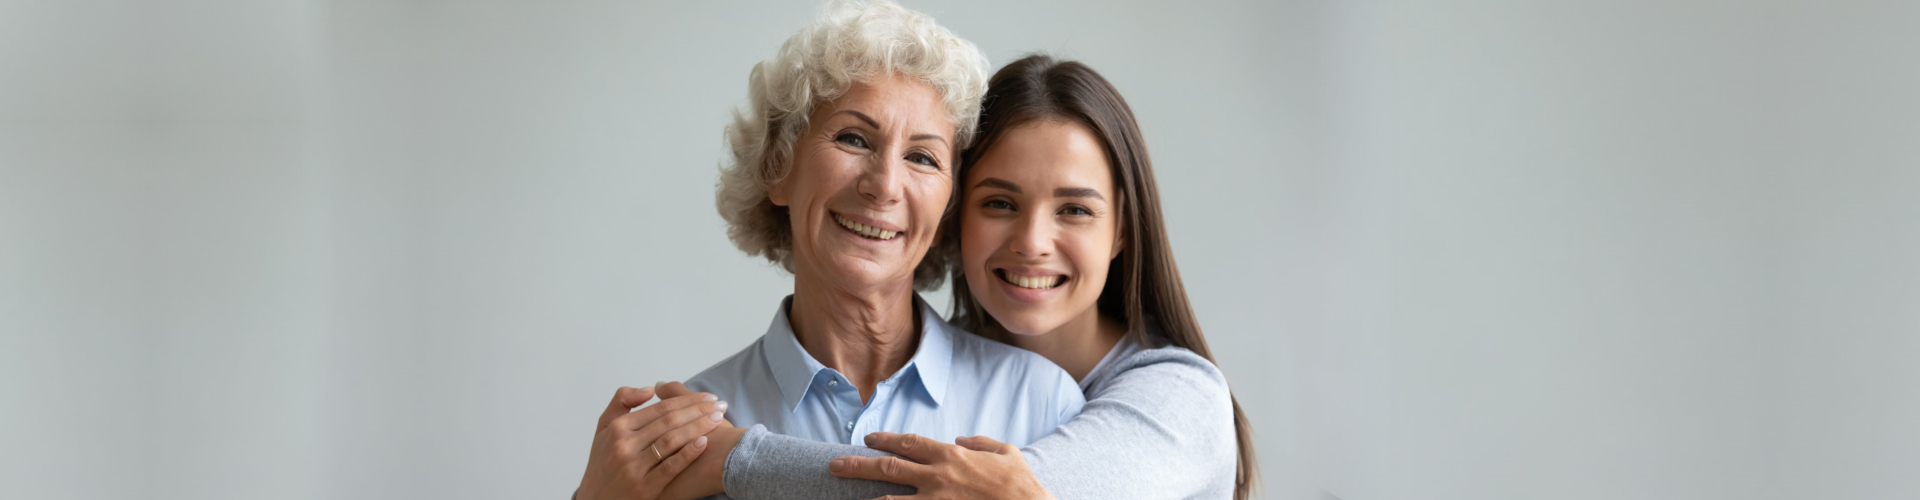 caregiver hugging senior woman from the back